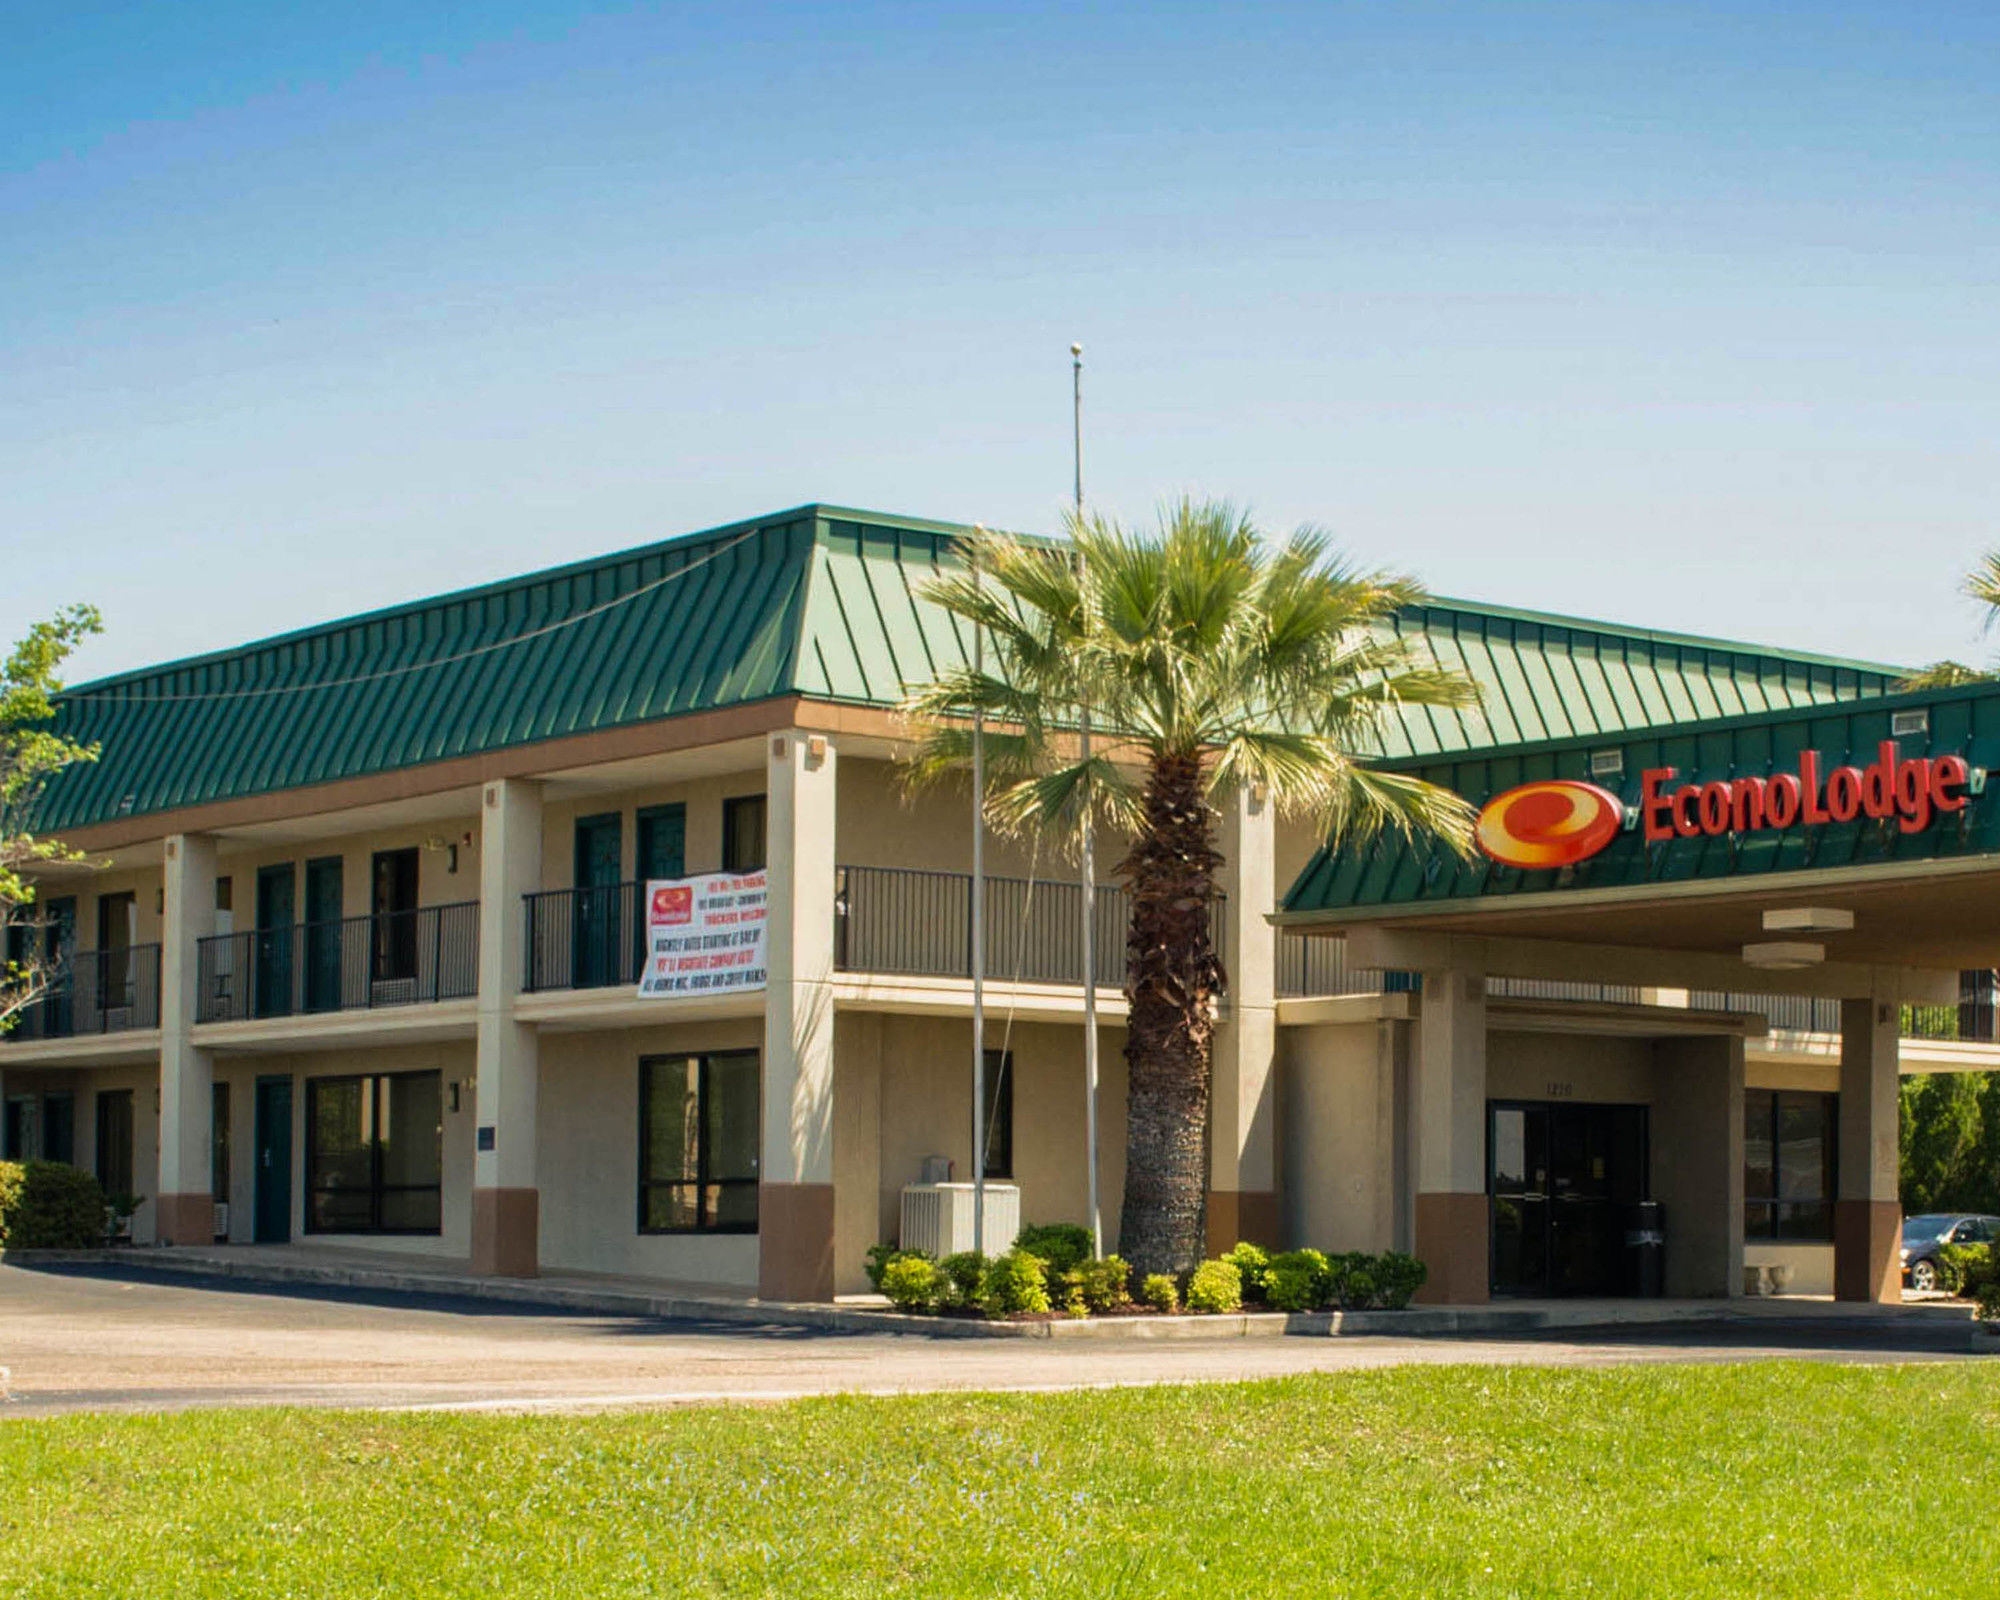 Econolodge in Saraland, AL